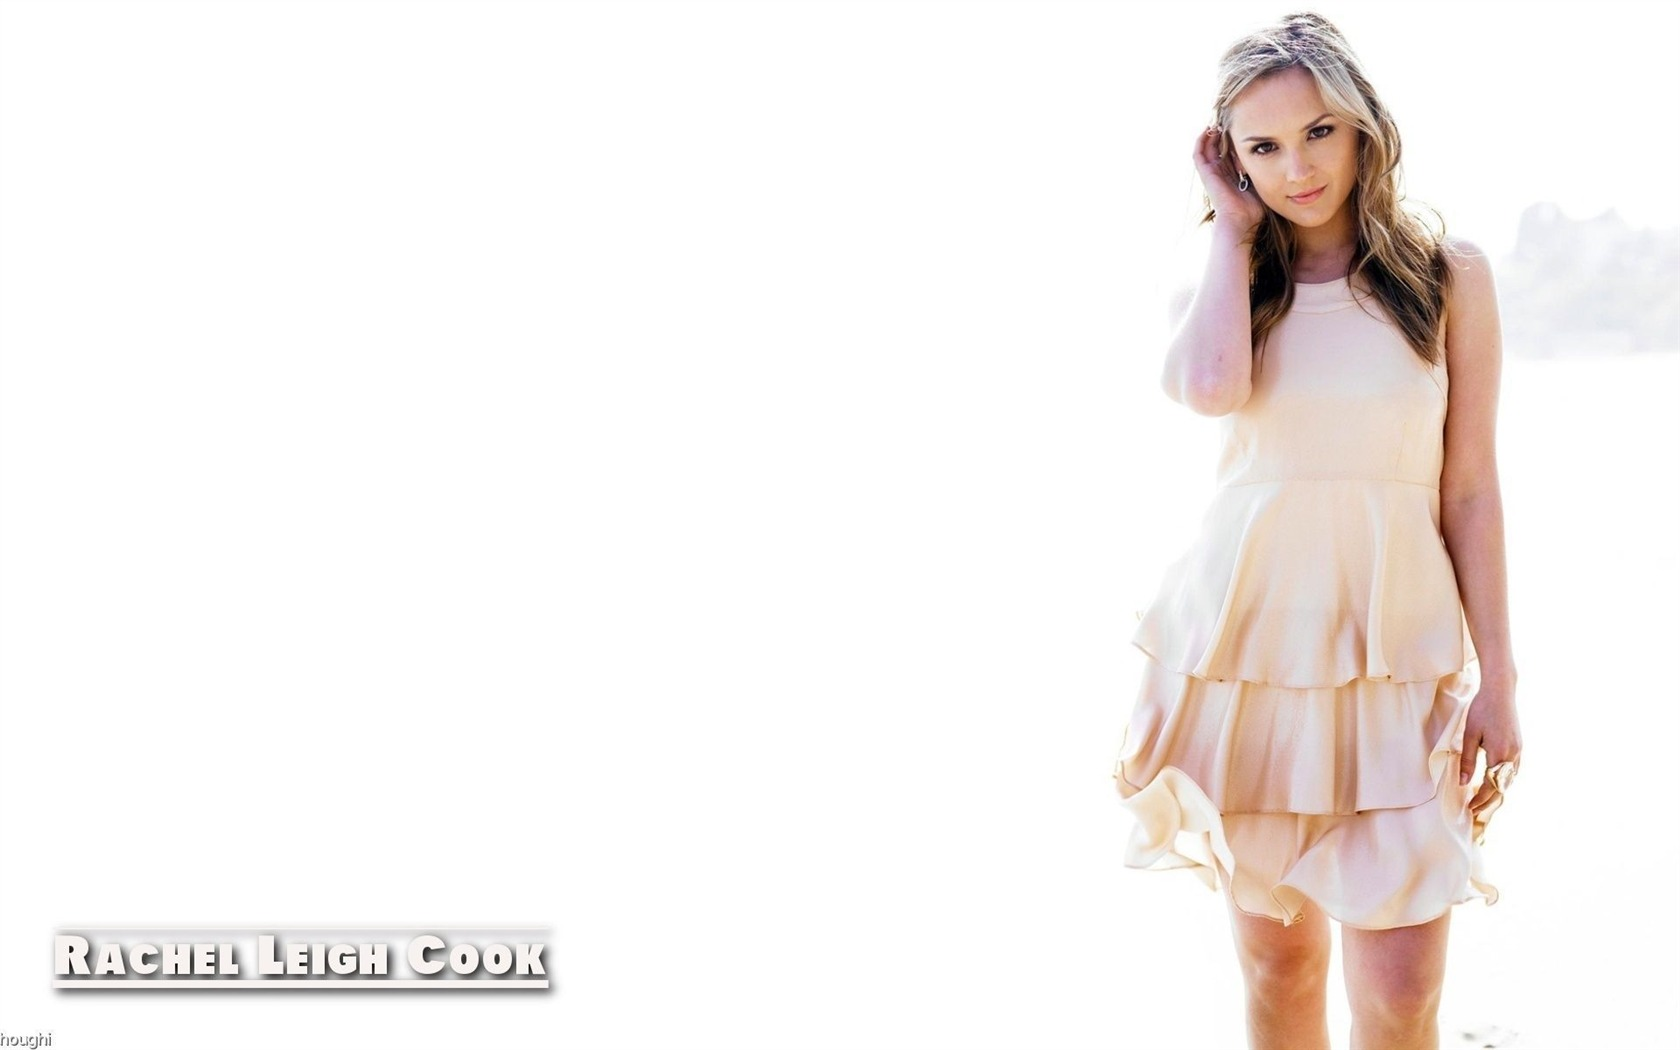 Rachael Leigh Cook #014 - 1680x1050 Wallpapers Pictures Photos Images